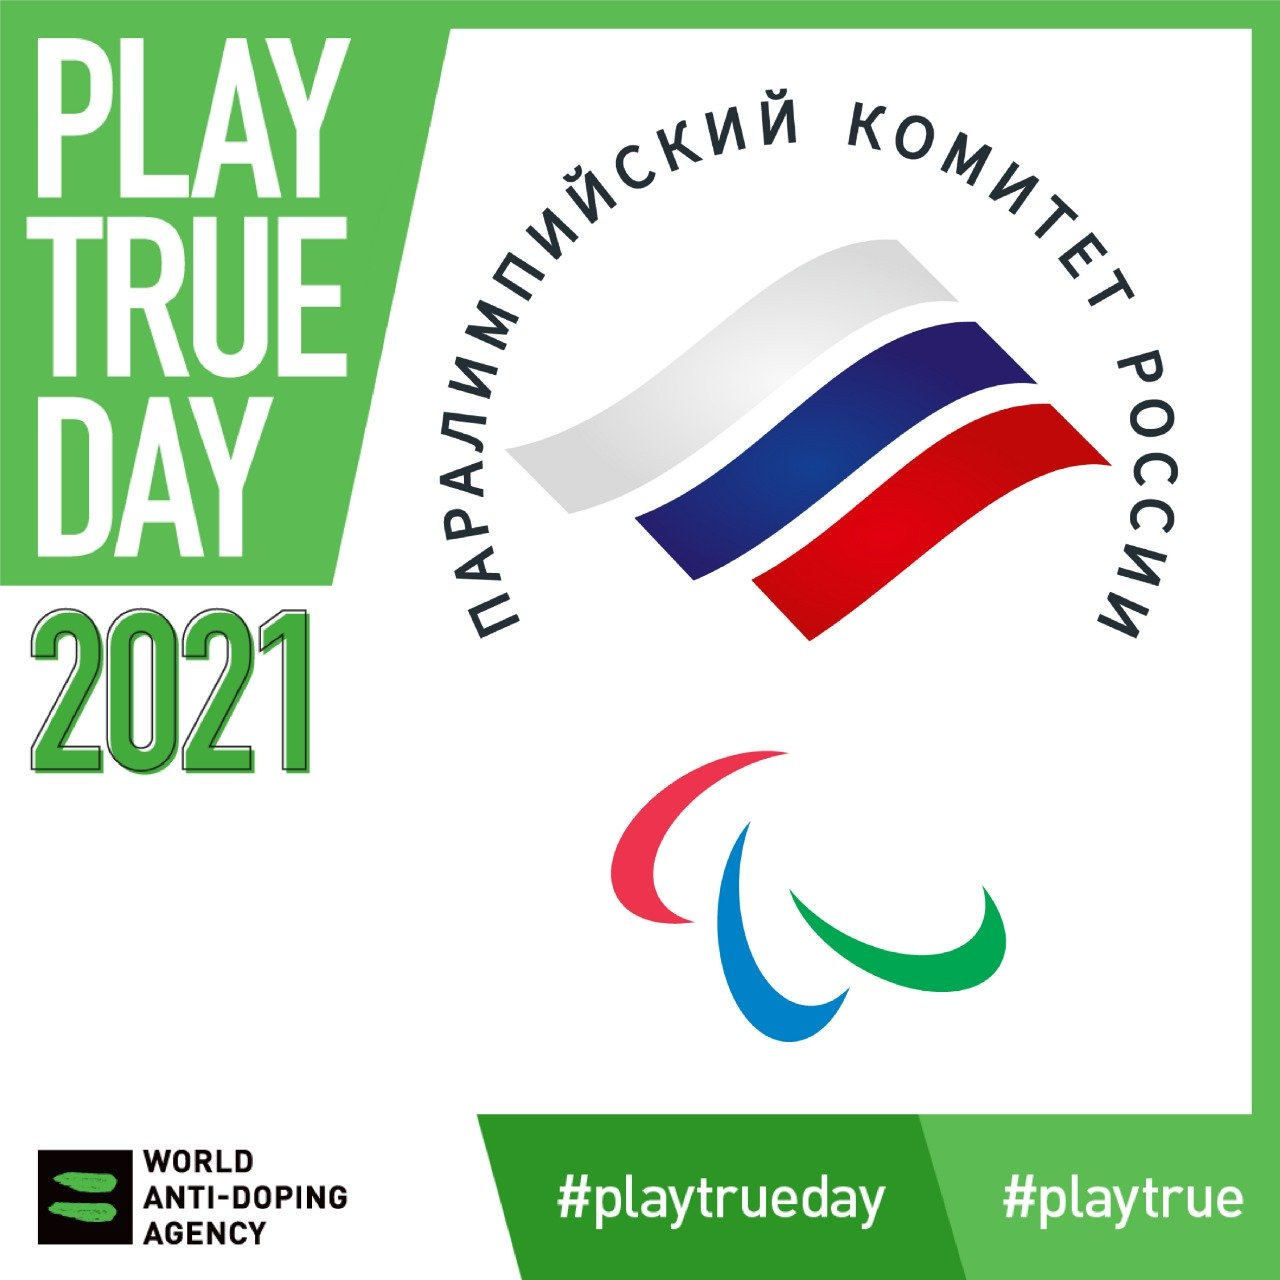 JOIN THE CELEBRATION OF PLAY TRUE DAY WITH THE IPC